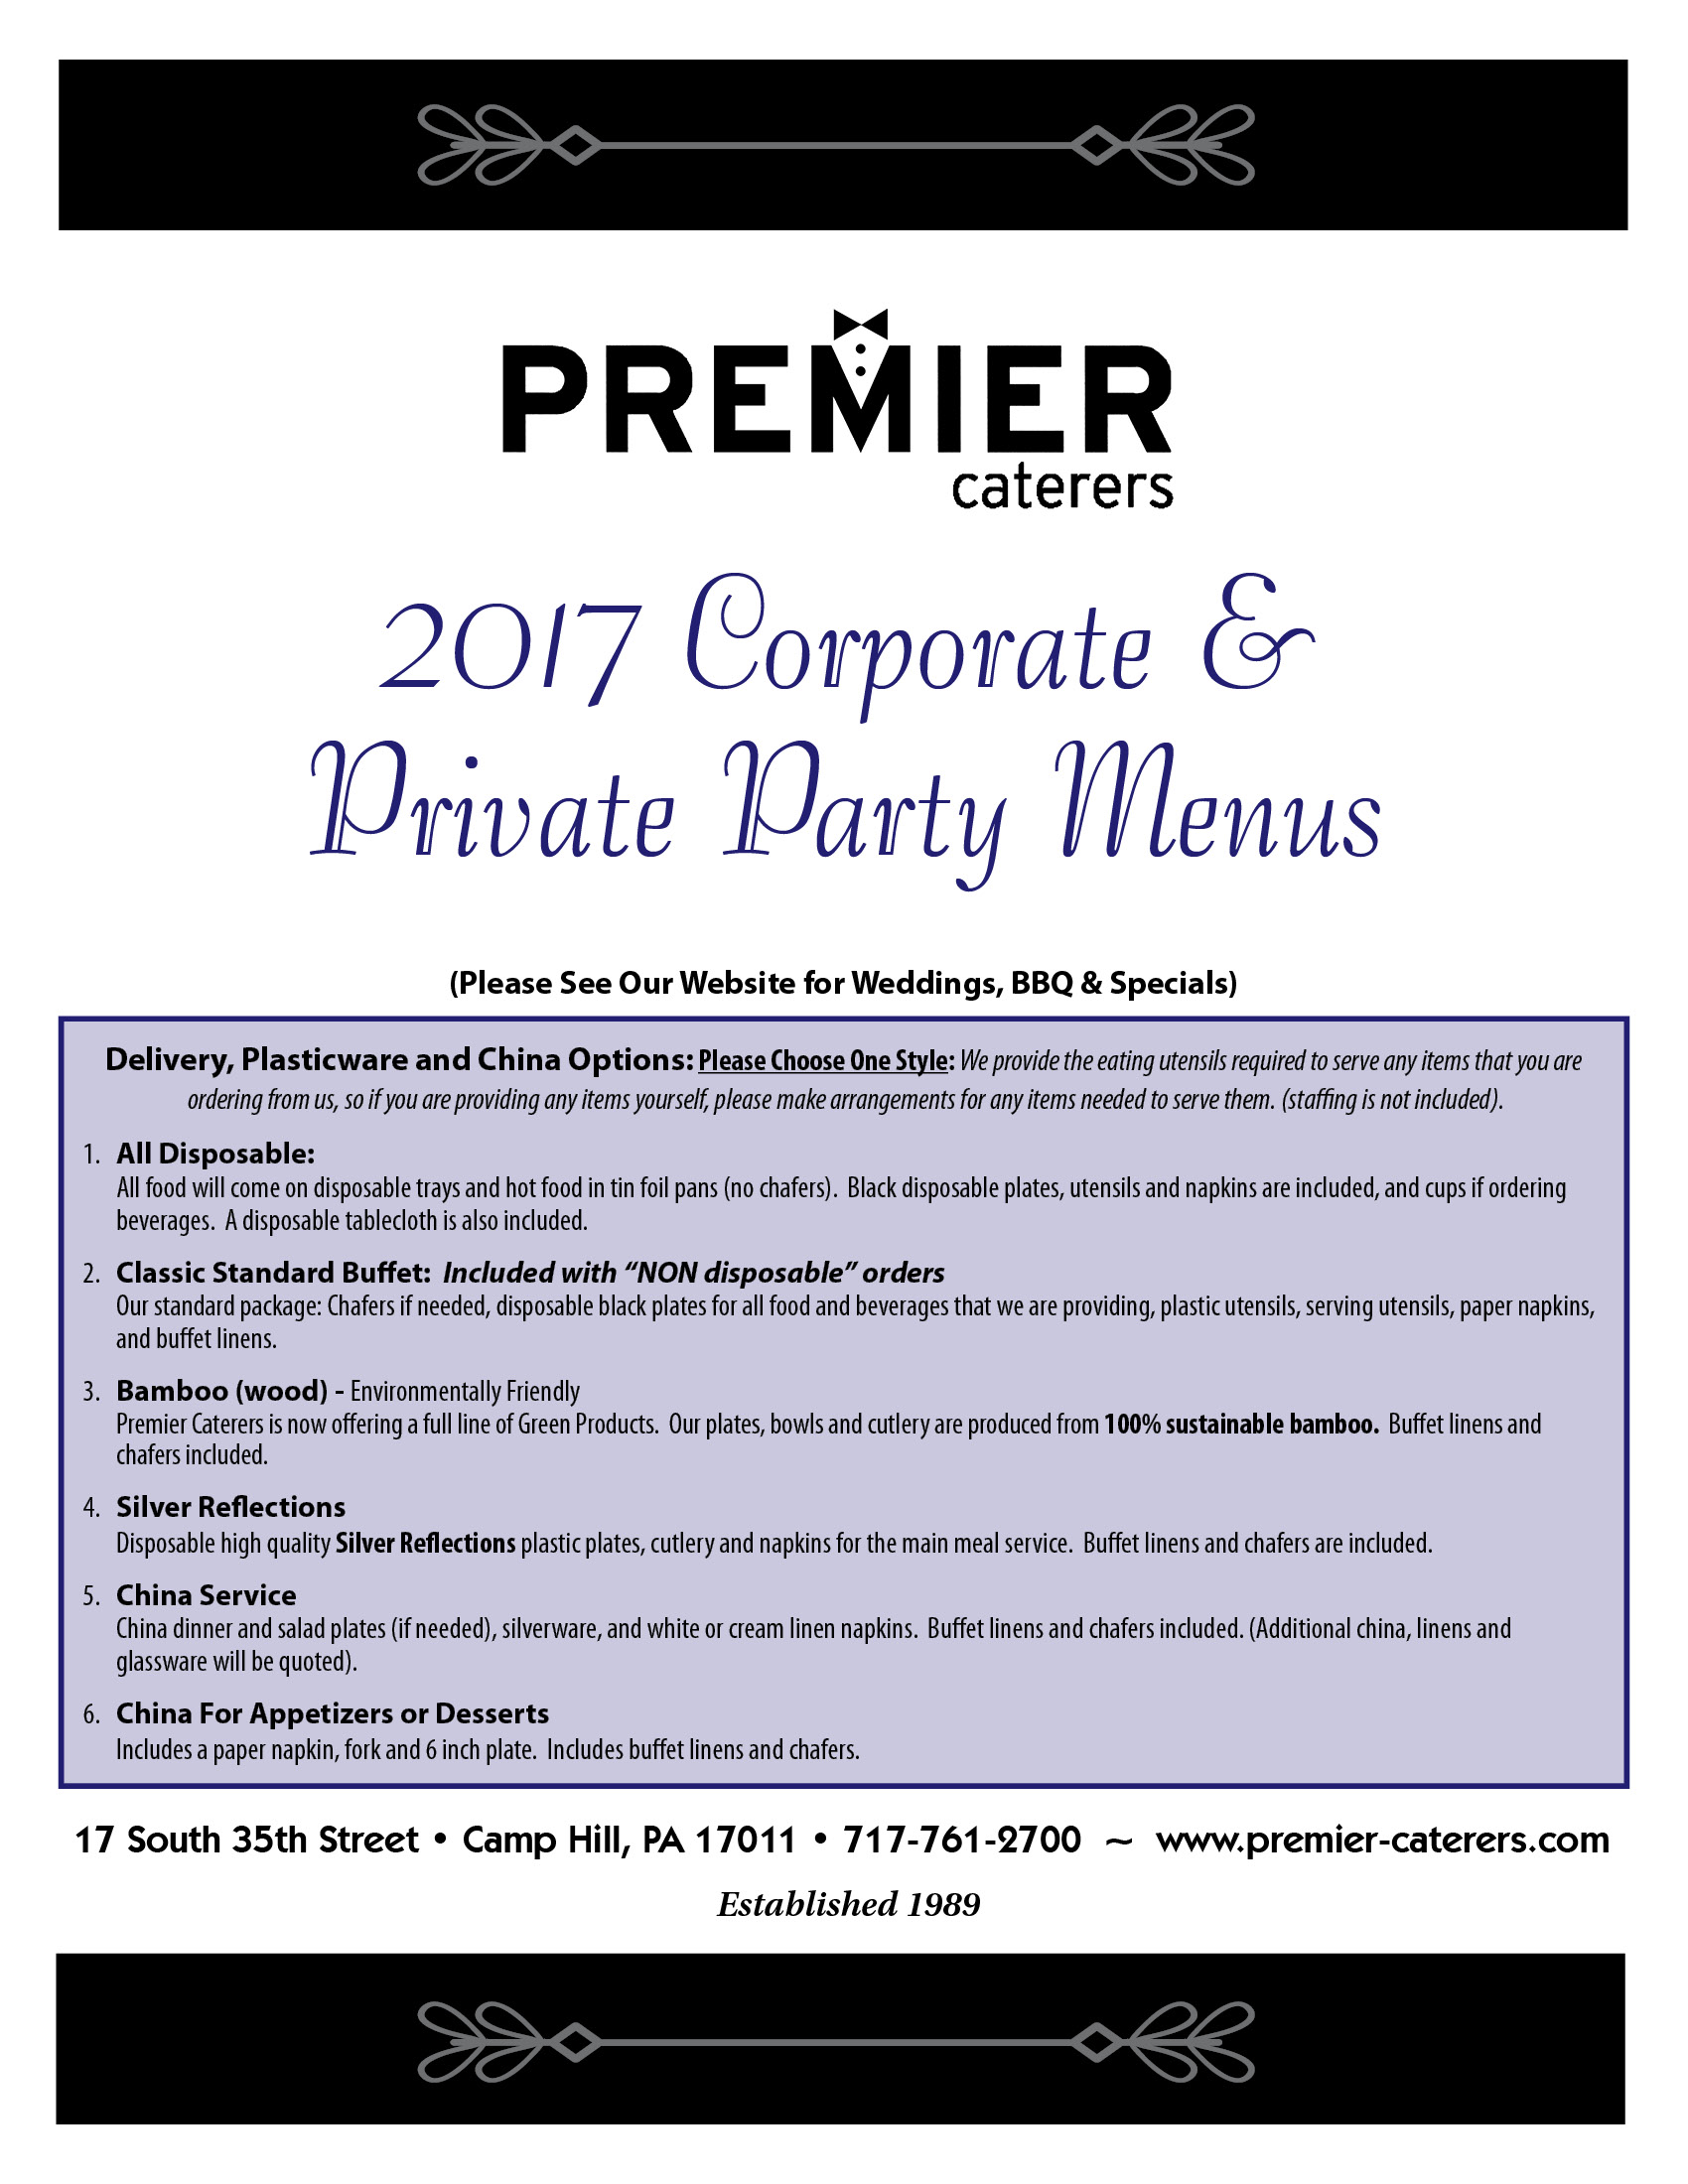 Premier Caterers | Where great food and service meet! | Camp Hill, PA